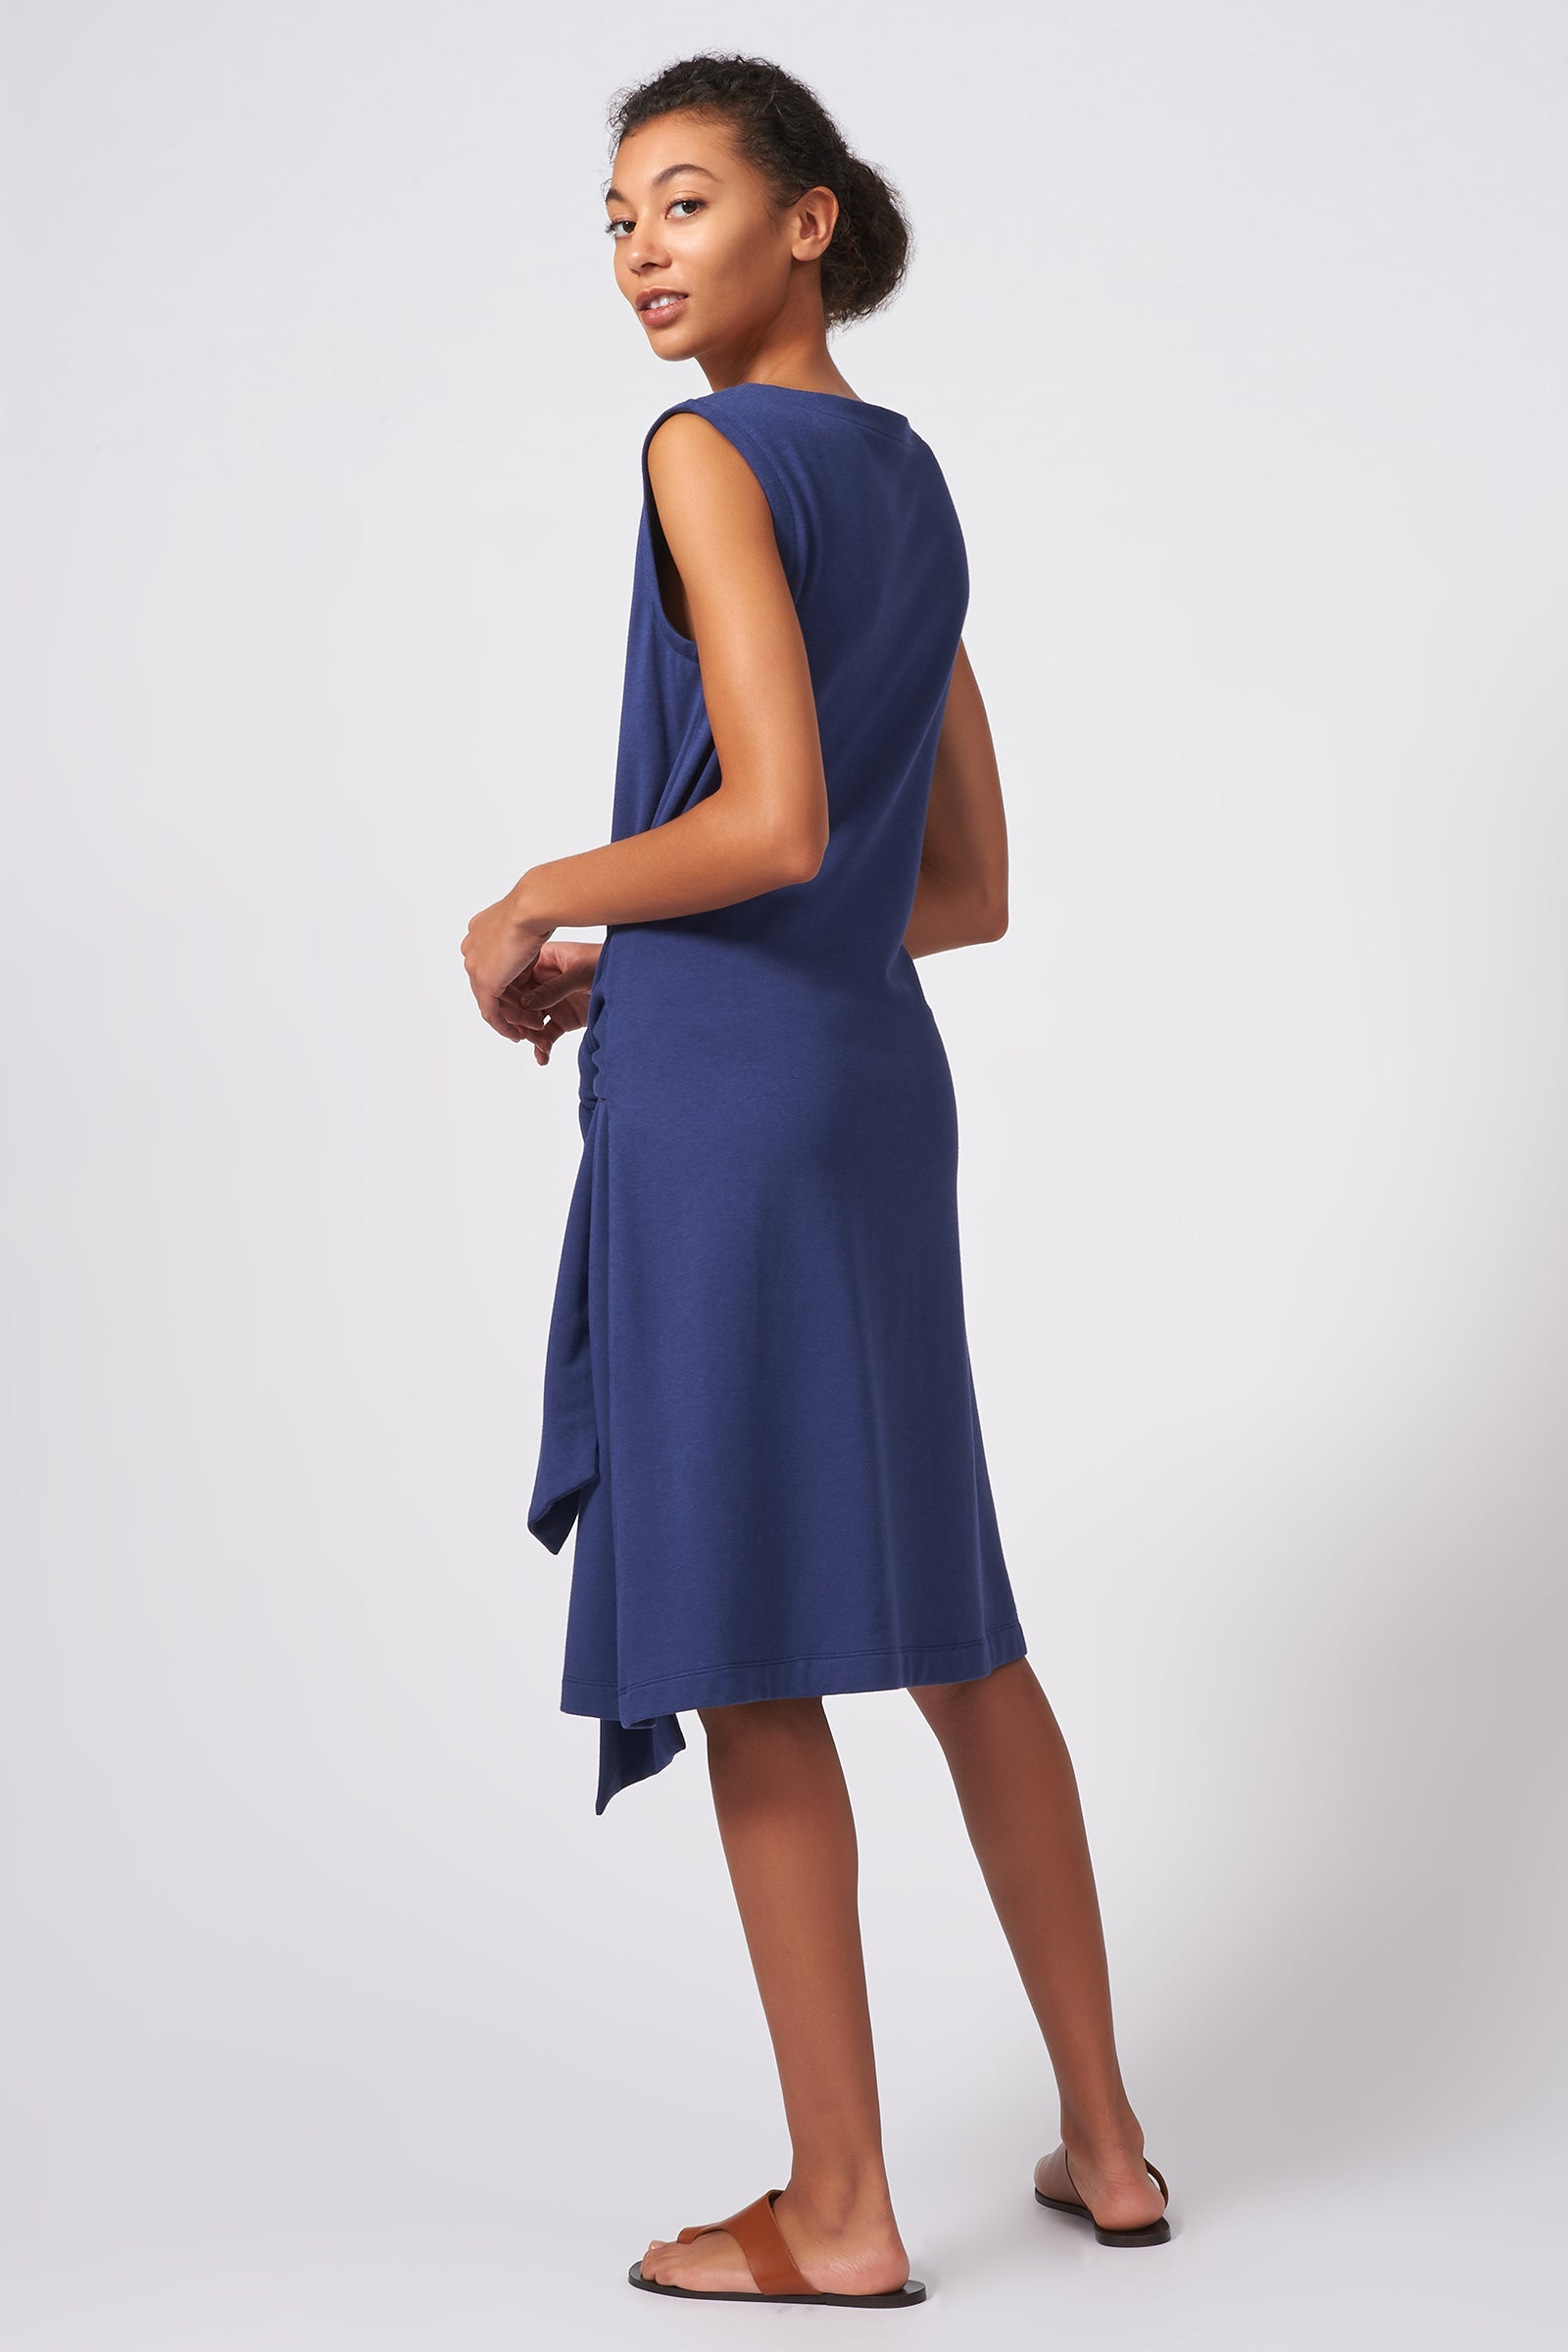 Kal Rieman Tie Waist Dress in Blue on Model Front View